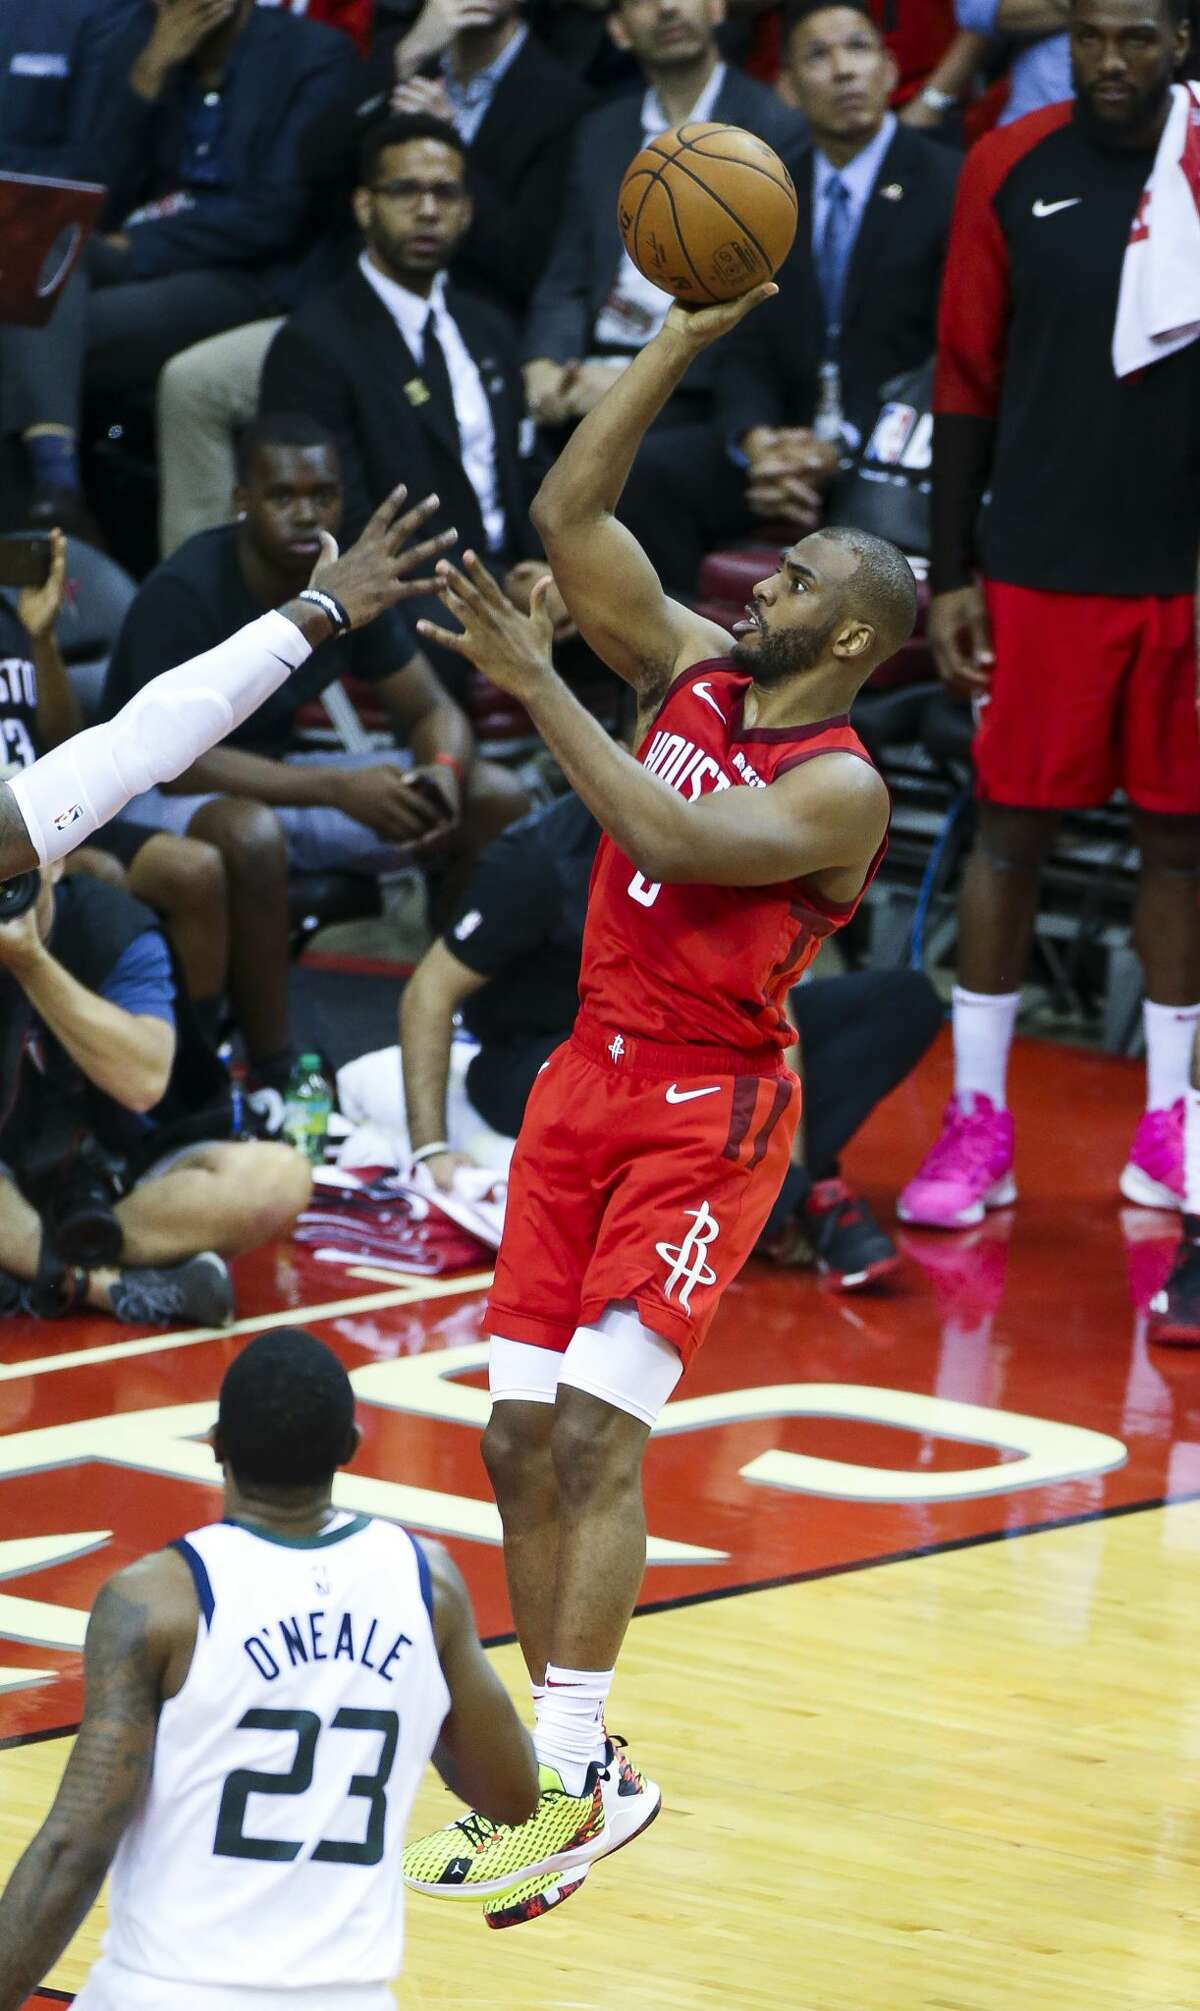 Houston Rockets guard Chris Paul (3) shoots during the fourth quarter of Game 5 of an NBA first round playoff series at Toyota Center in Houston, Wednesday, April 24, 2019.